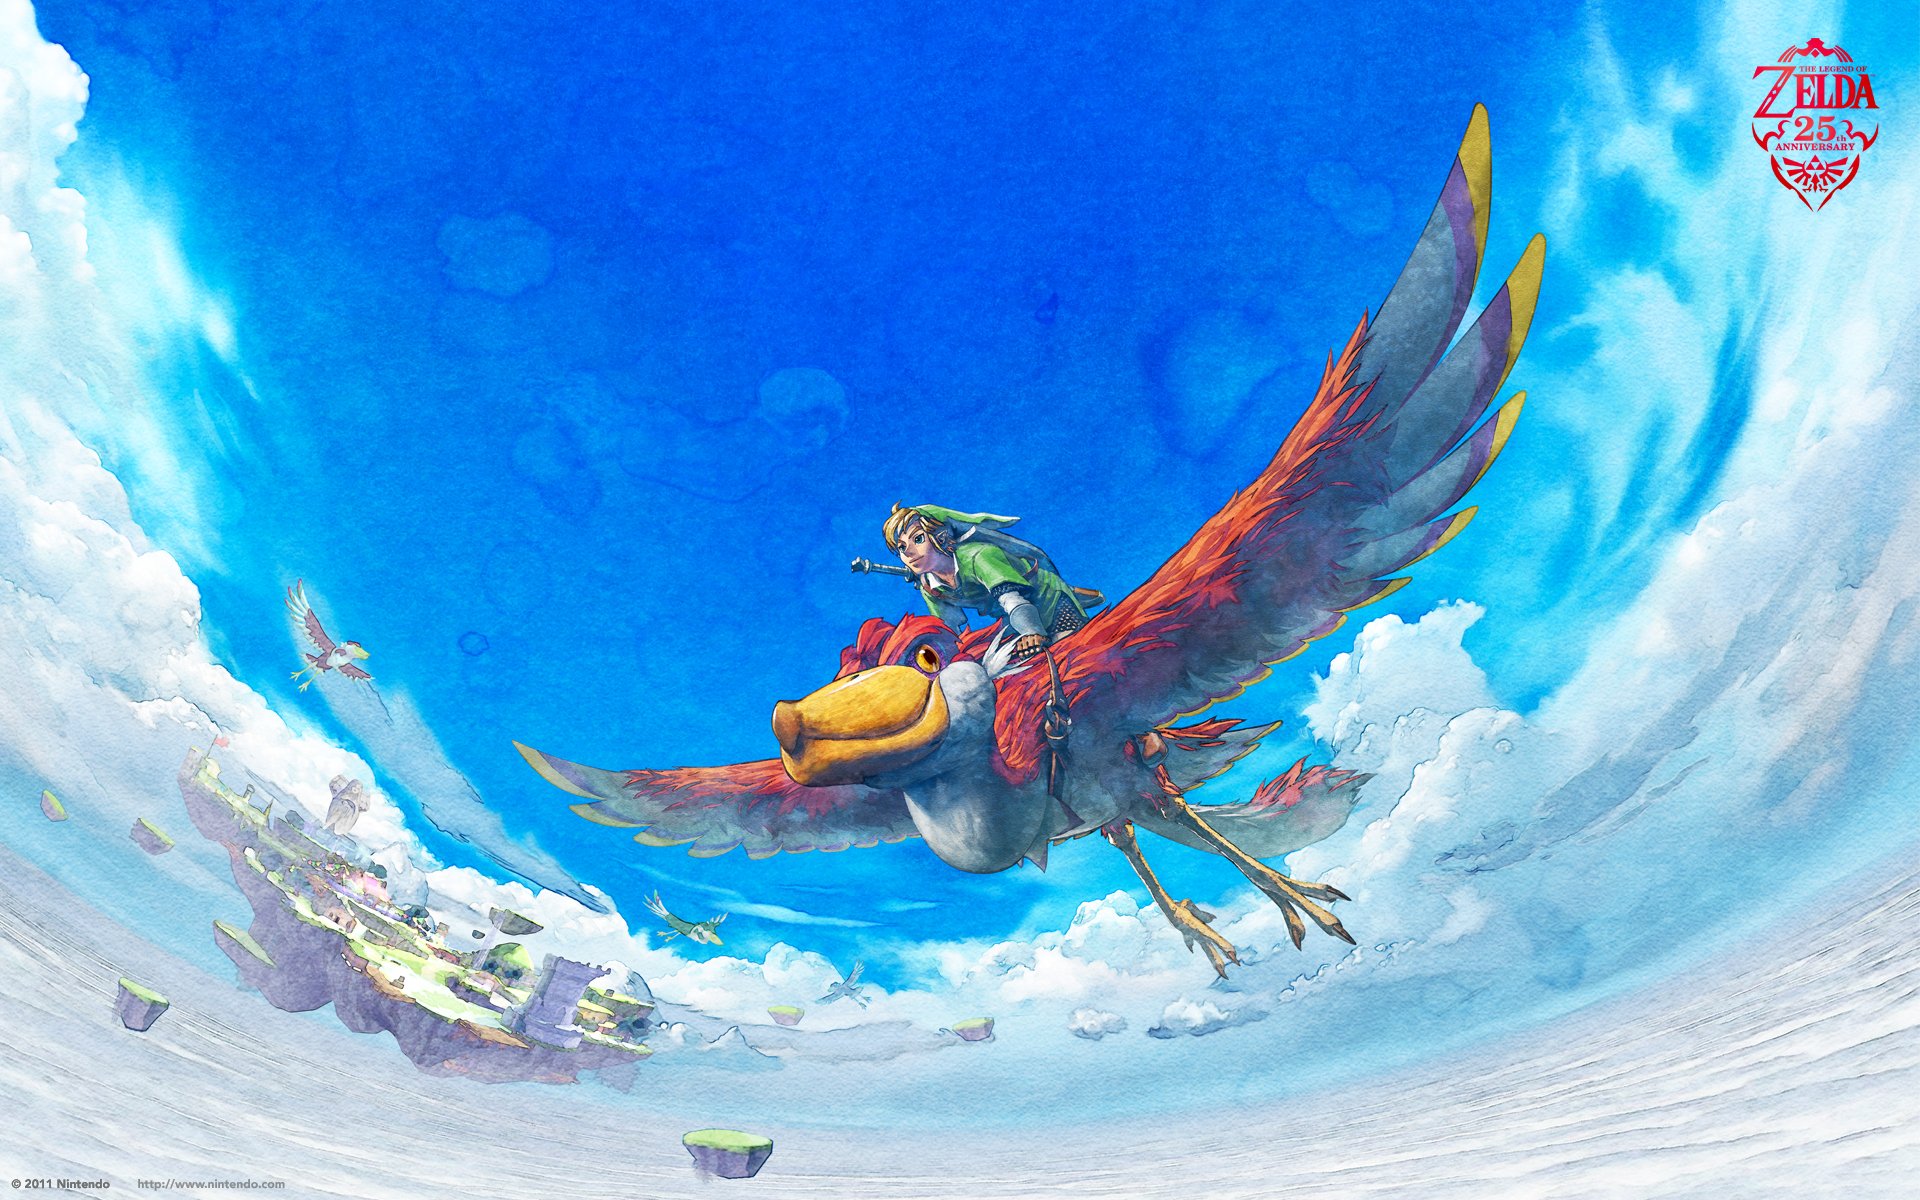 link flying on his